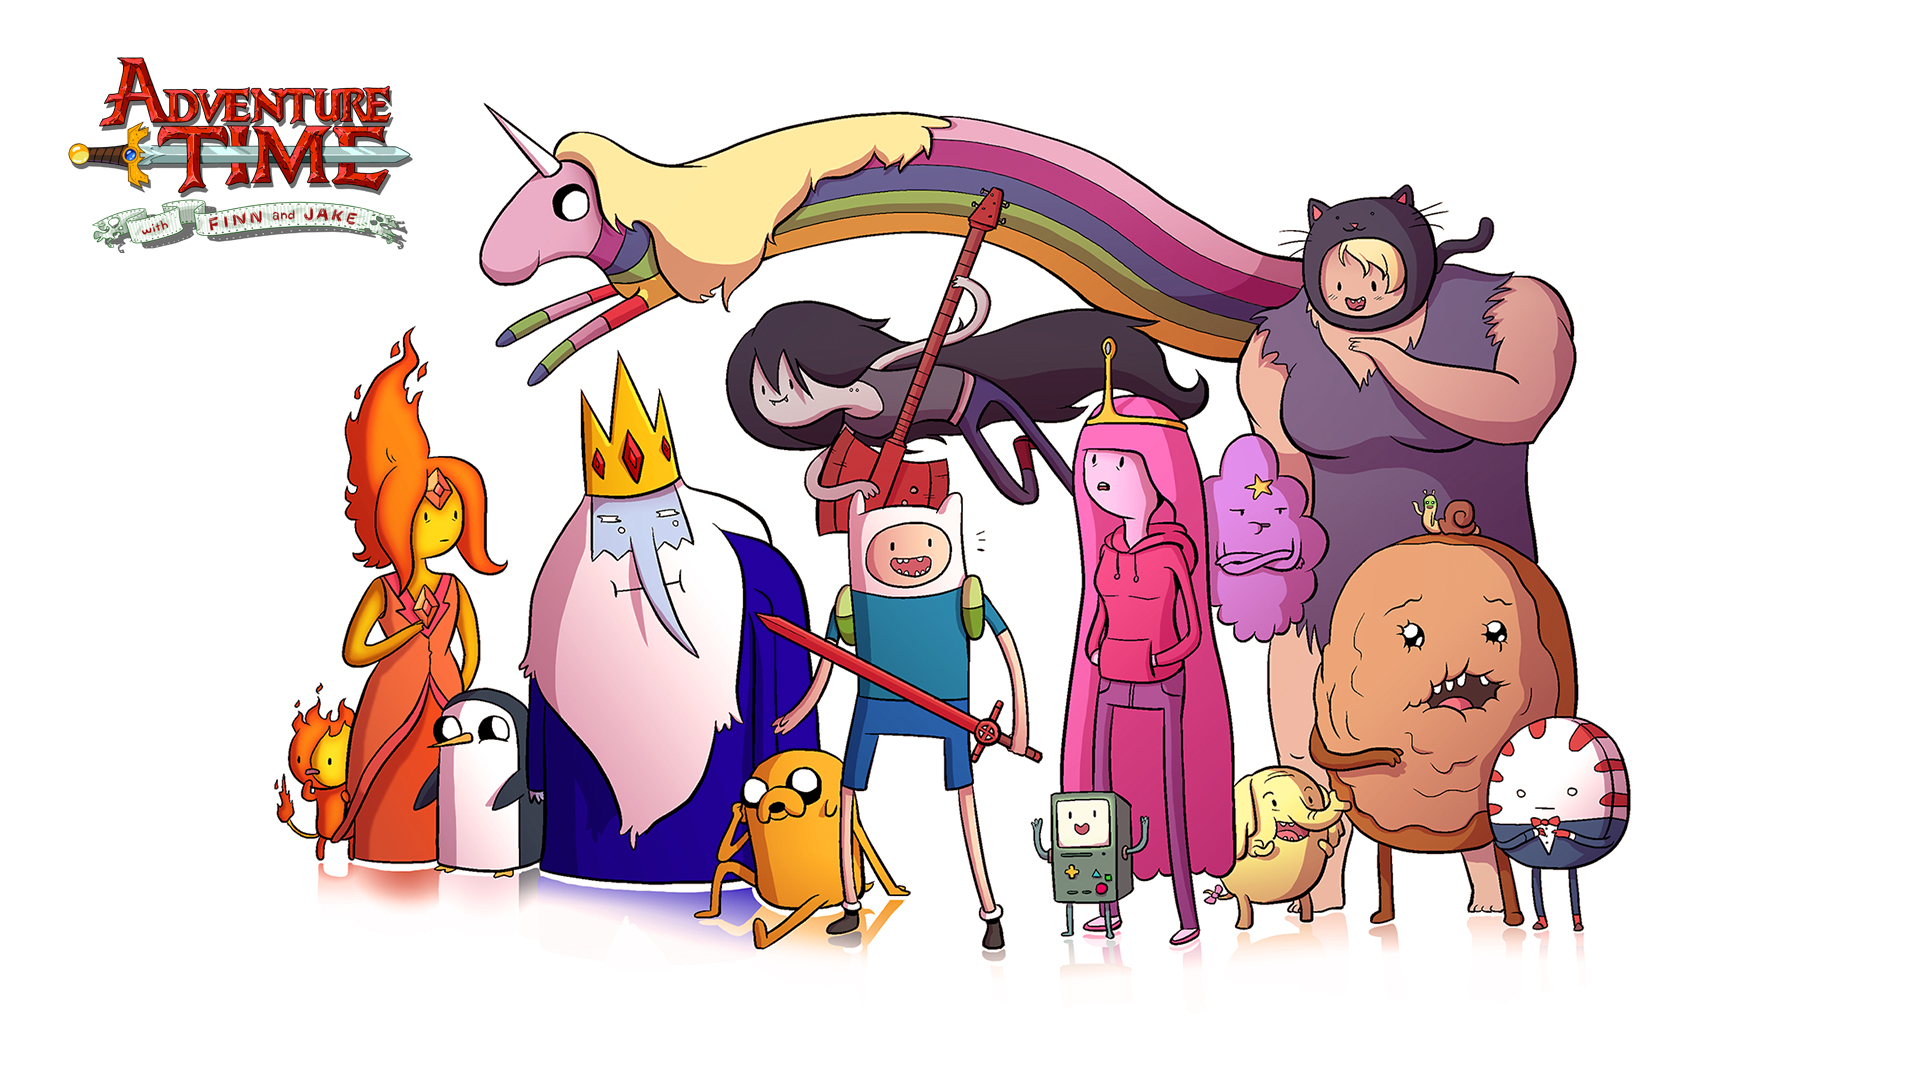 336 adventure time hd wallpapers background images wallpaper abyss altavistaventures Gallery